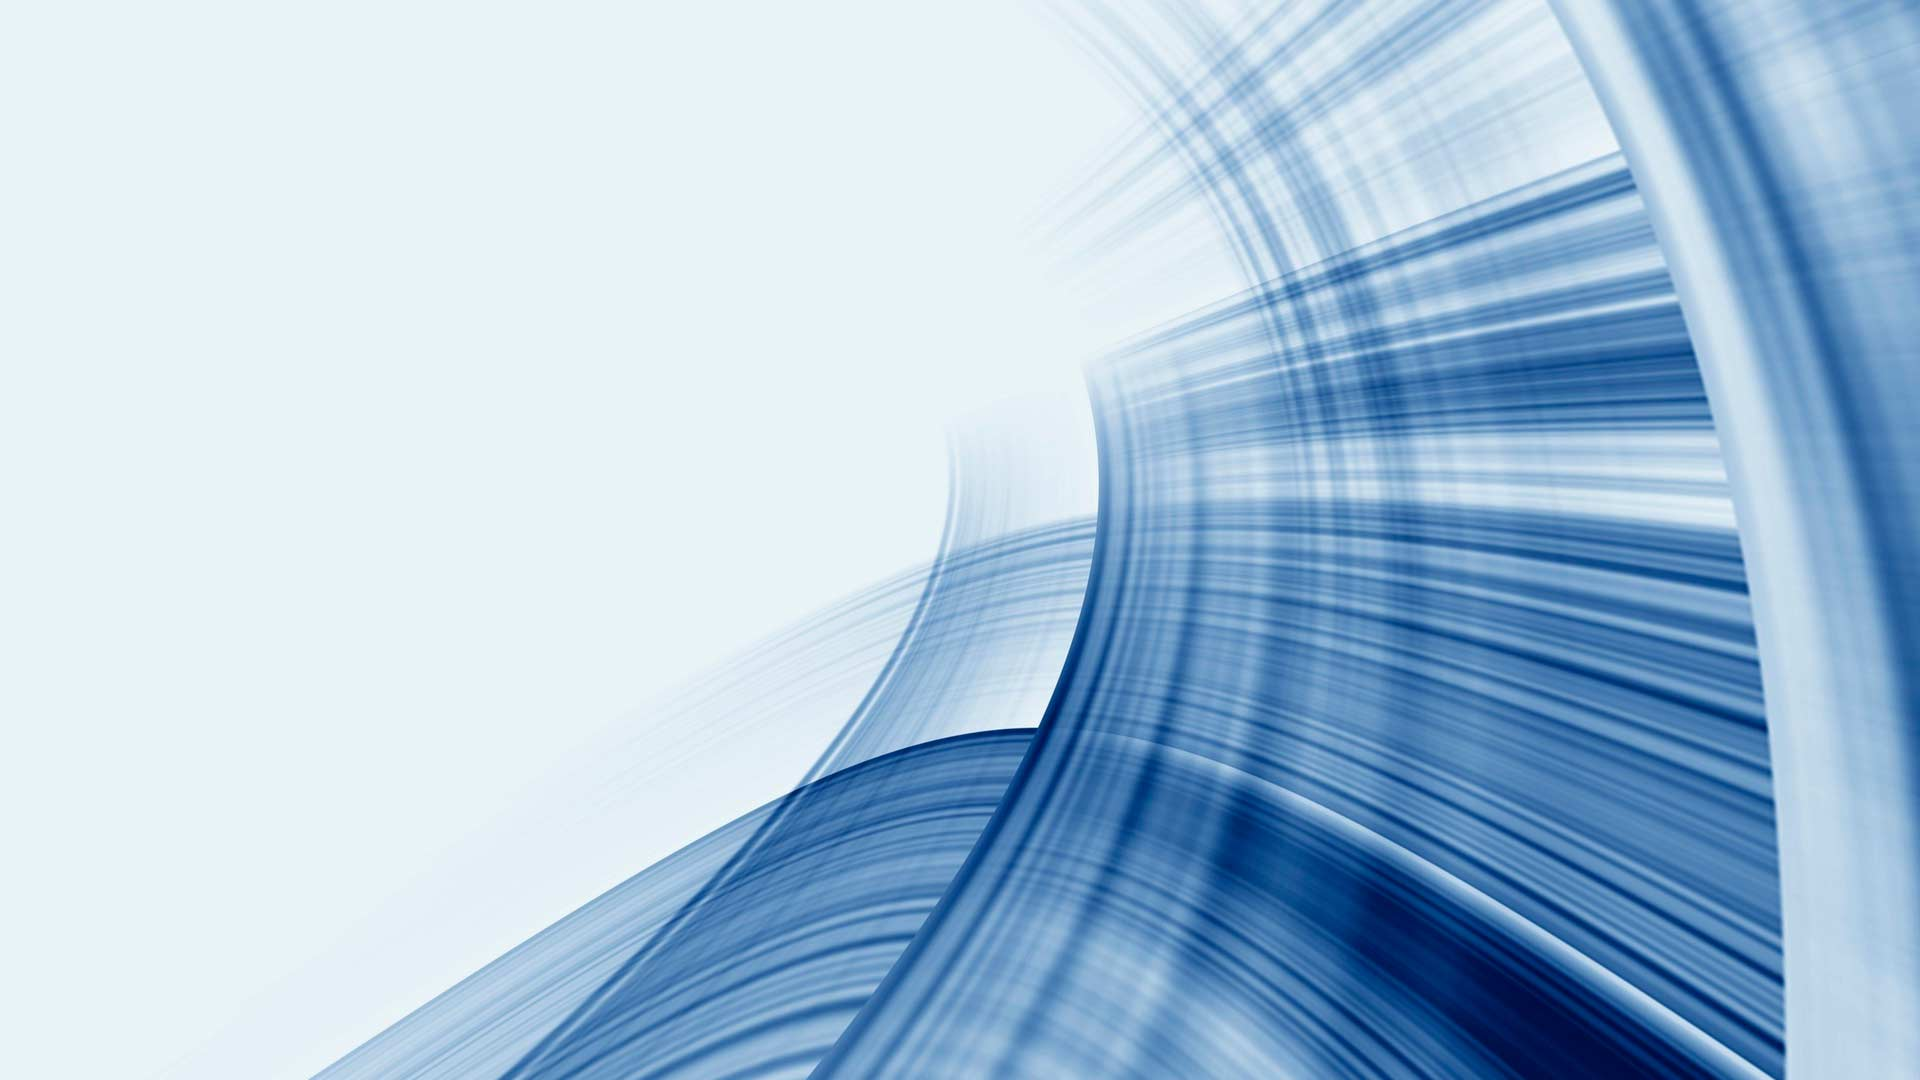 Free Metallic Pattern Lines Backgrounds For PowerPoint - Abstract ...